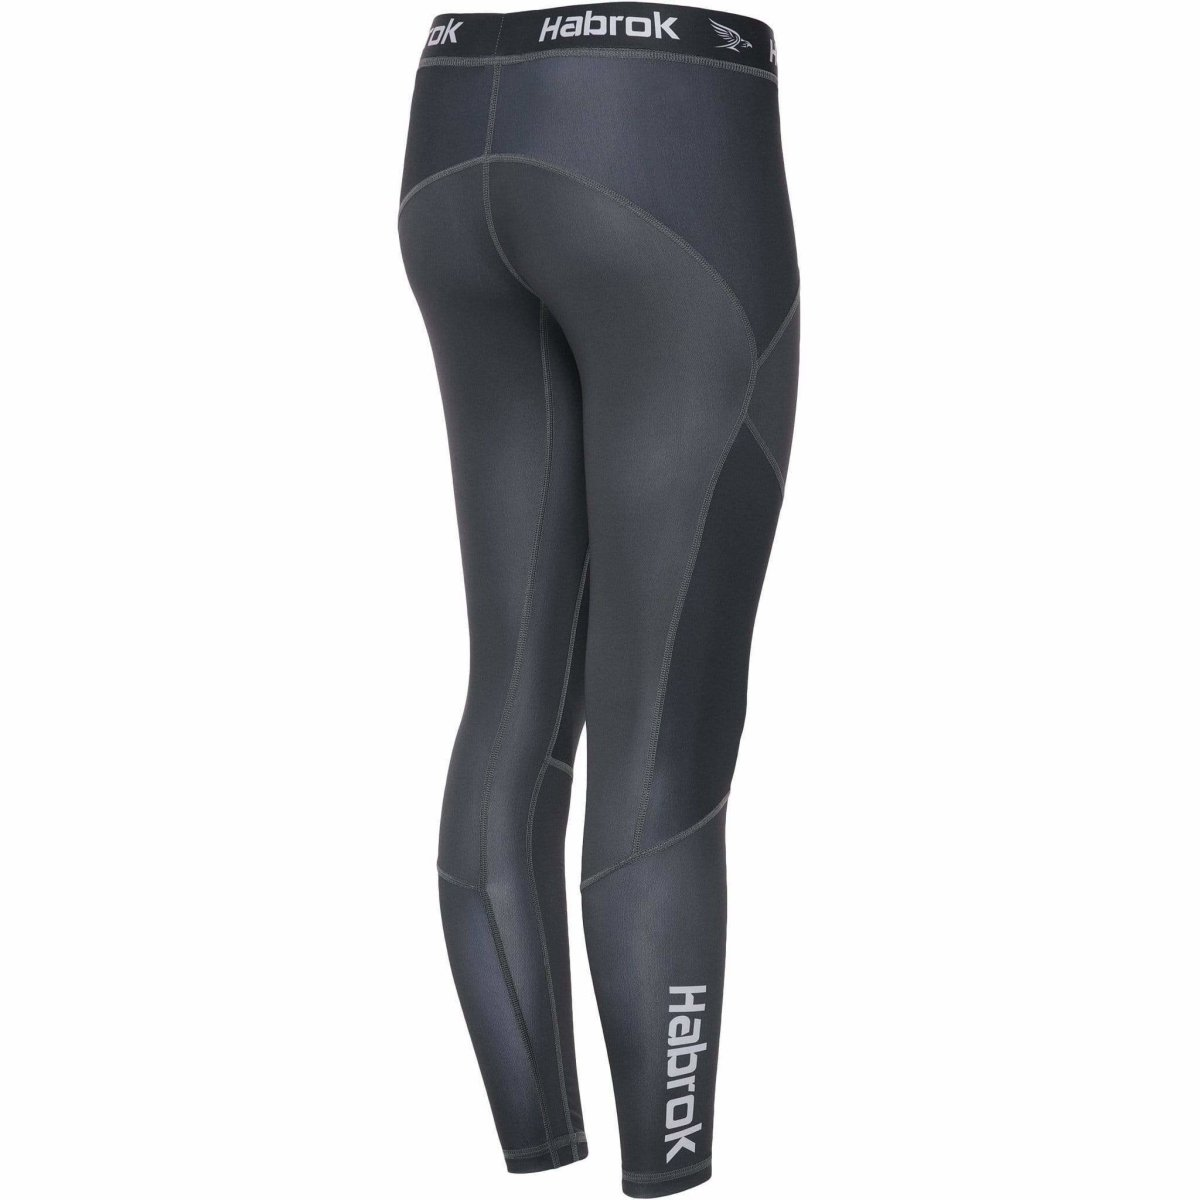 Habrok Spats Pugnator | Compression Pants | Women